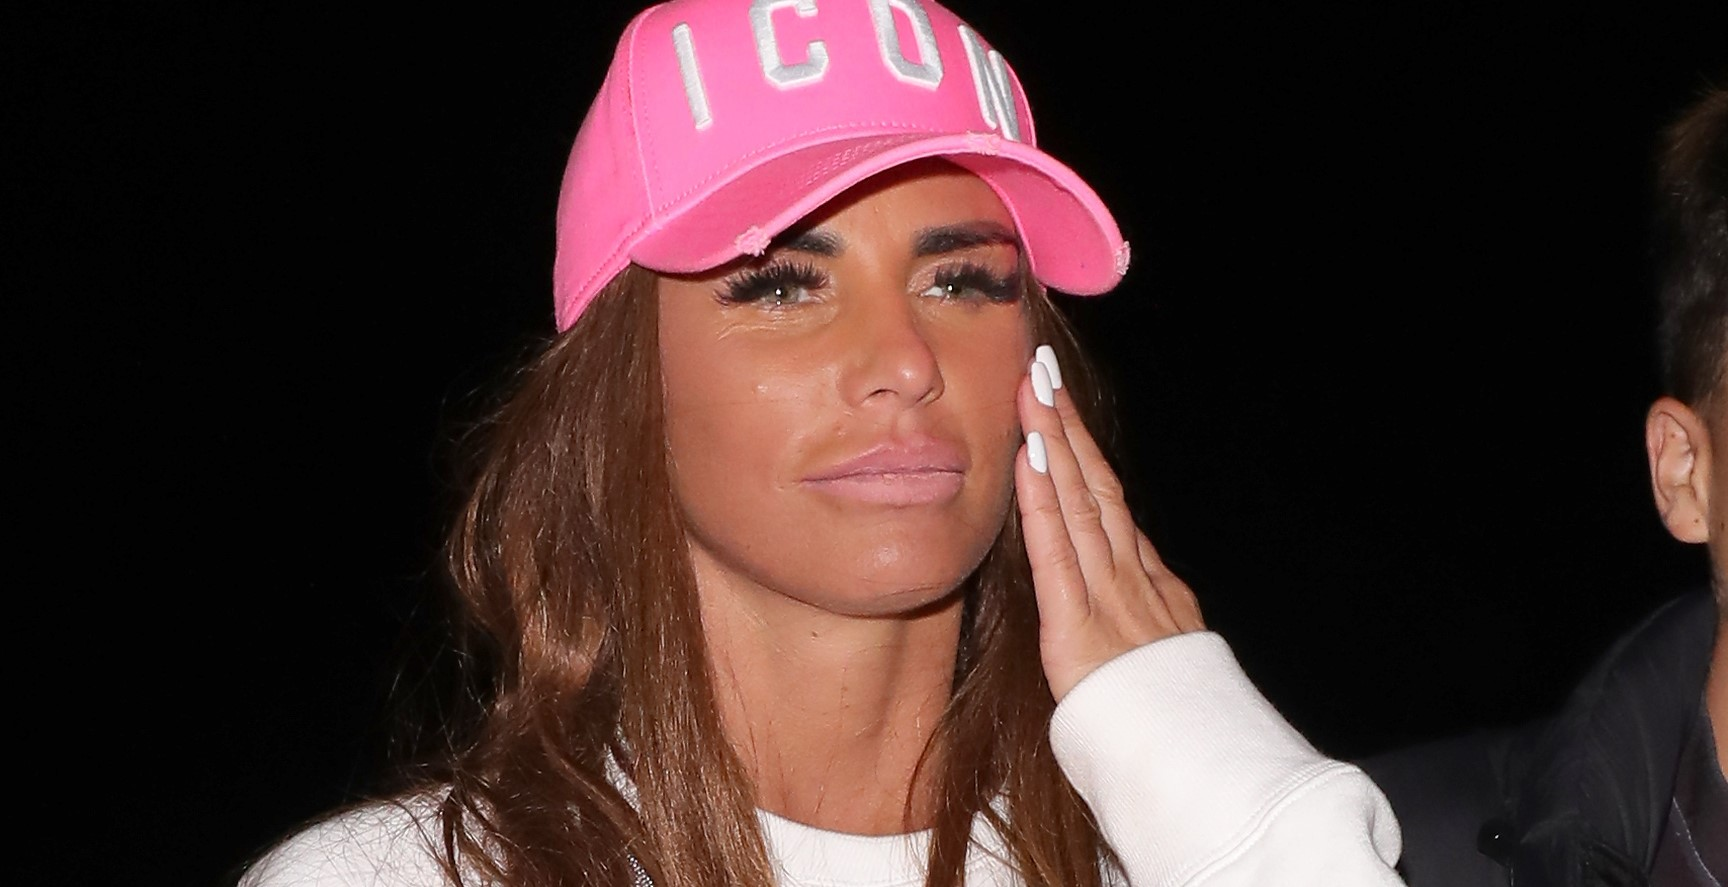 Katie Price furiously slams rehab claims after being spotted outside The Priory